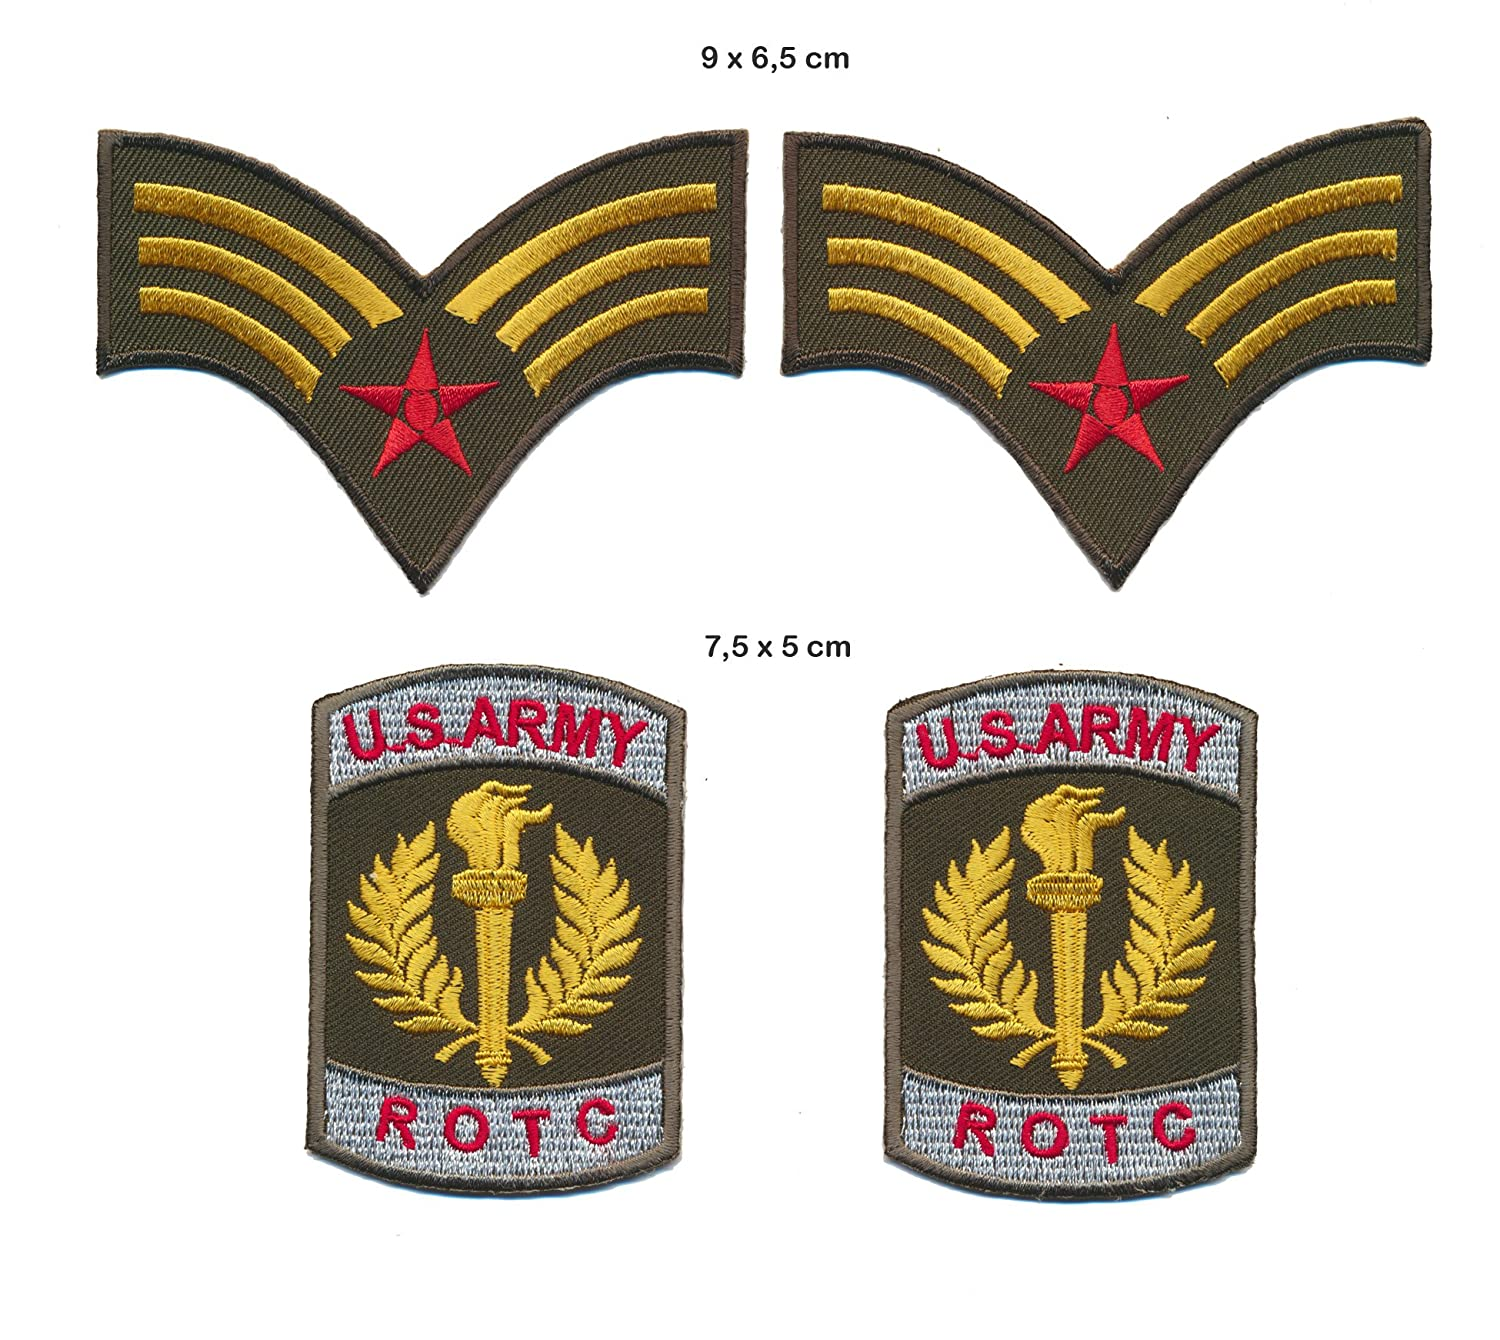 Uniforme Distintivo toppa patch 4  pezzi Emblem Requisite Turbo spedizione DeBeer & Jonckers BV